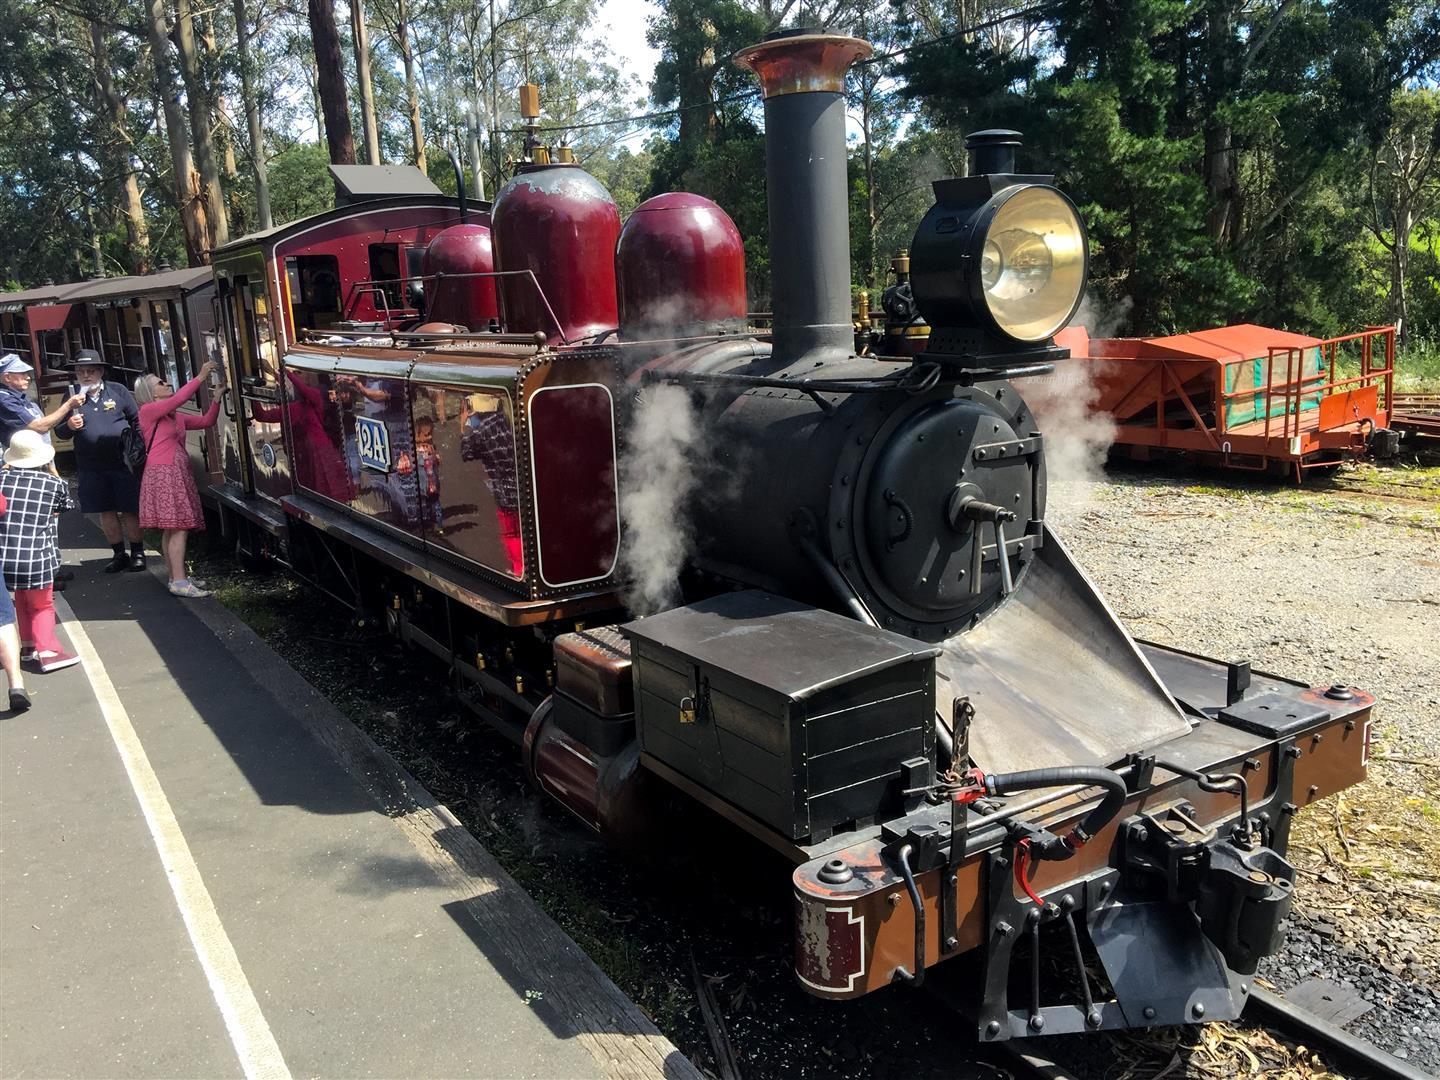 A series of trains are maintained and run for tourists by volunteers purely for its historical significance.